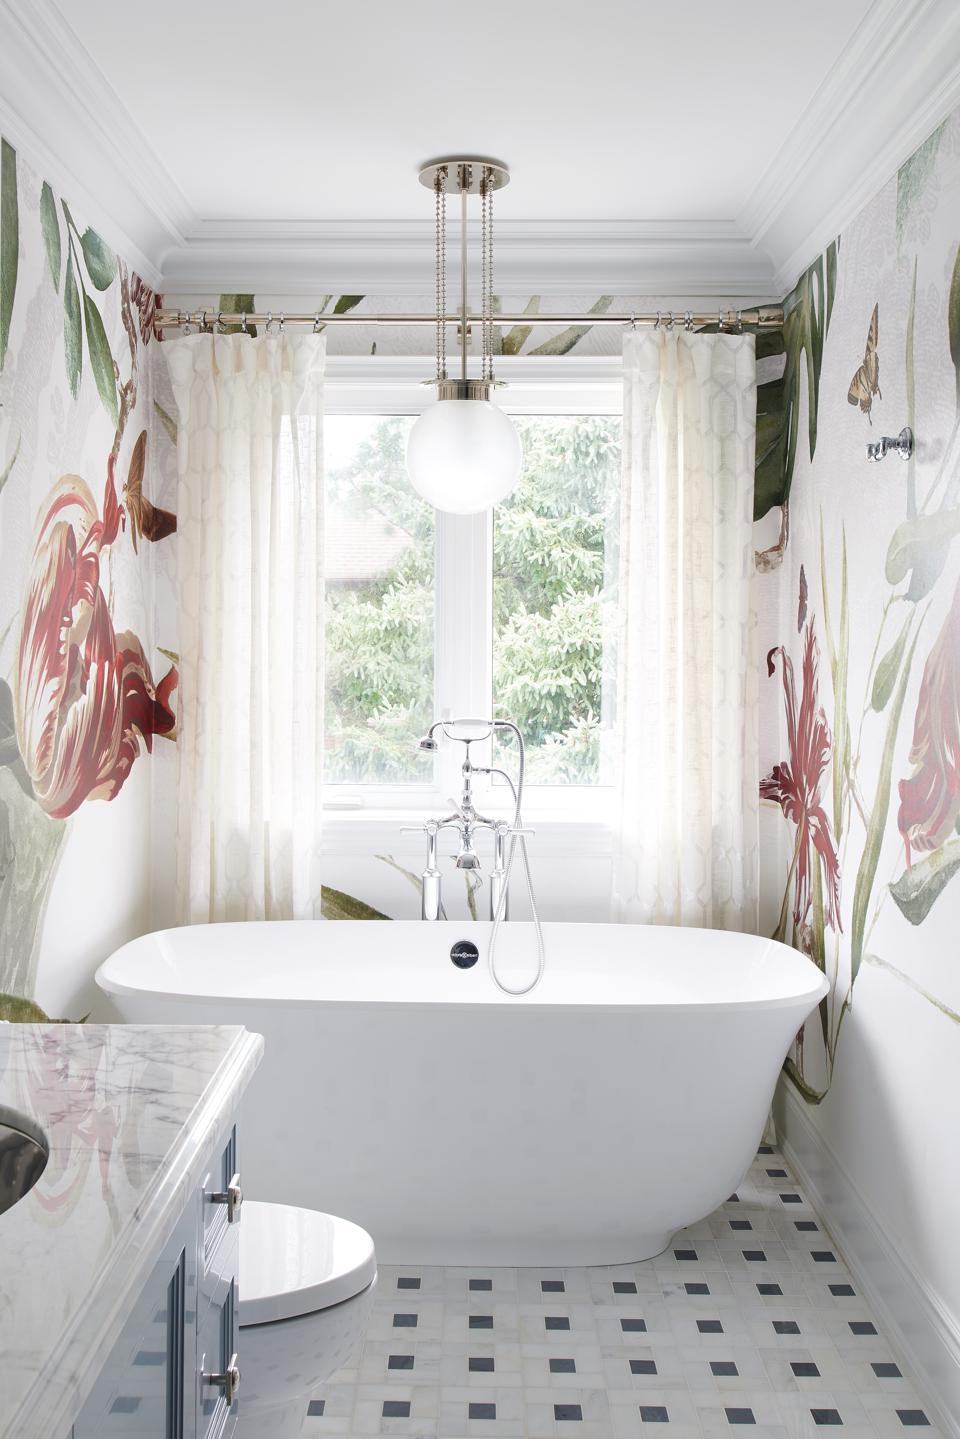 Bright and white bathroom with bold drapes